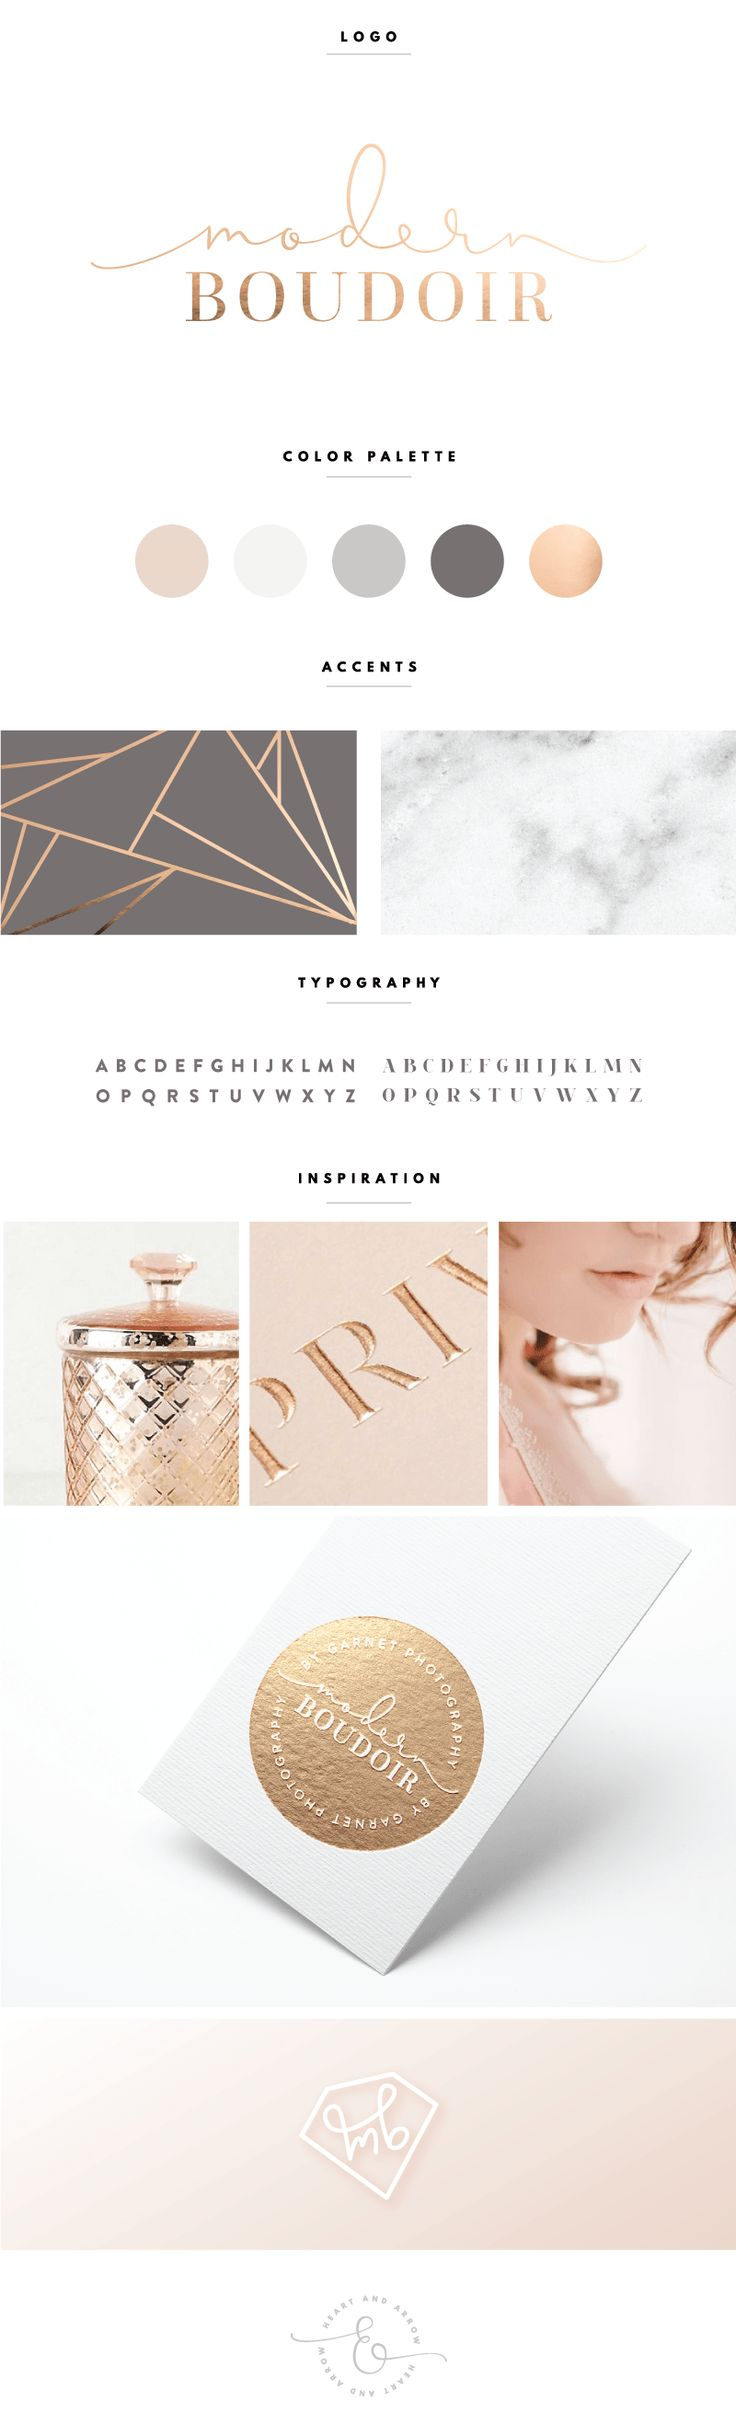 Charte graphique de la marque Modern Boudoir par Heart and Arrow design.